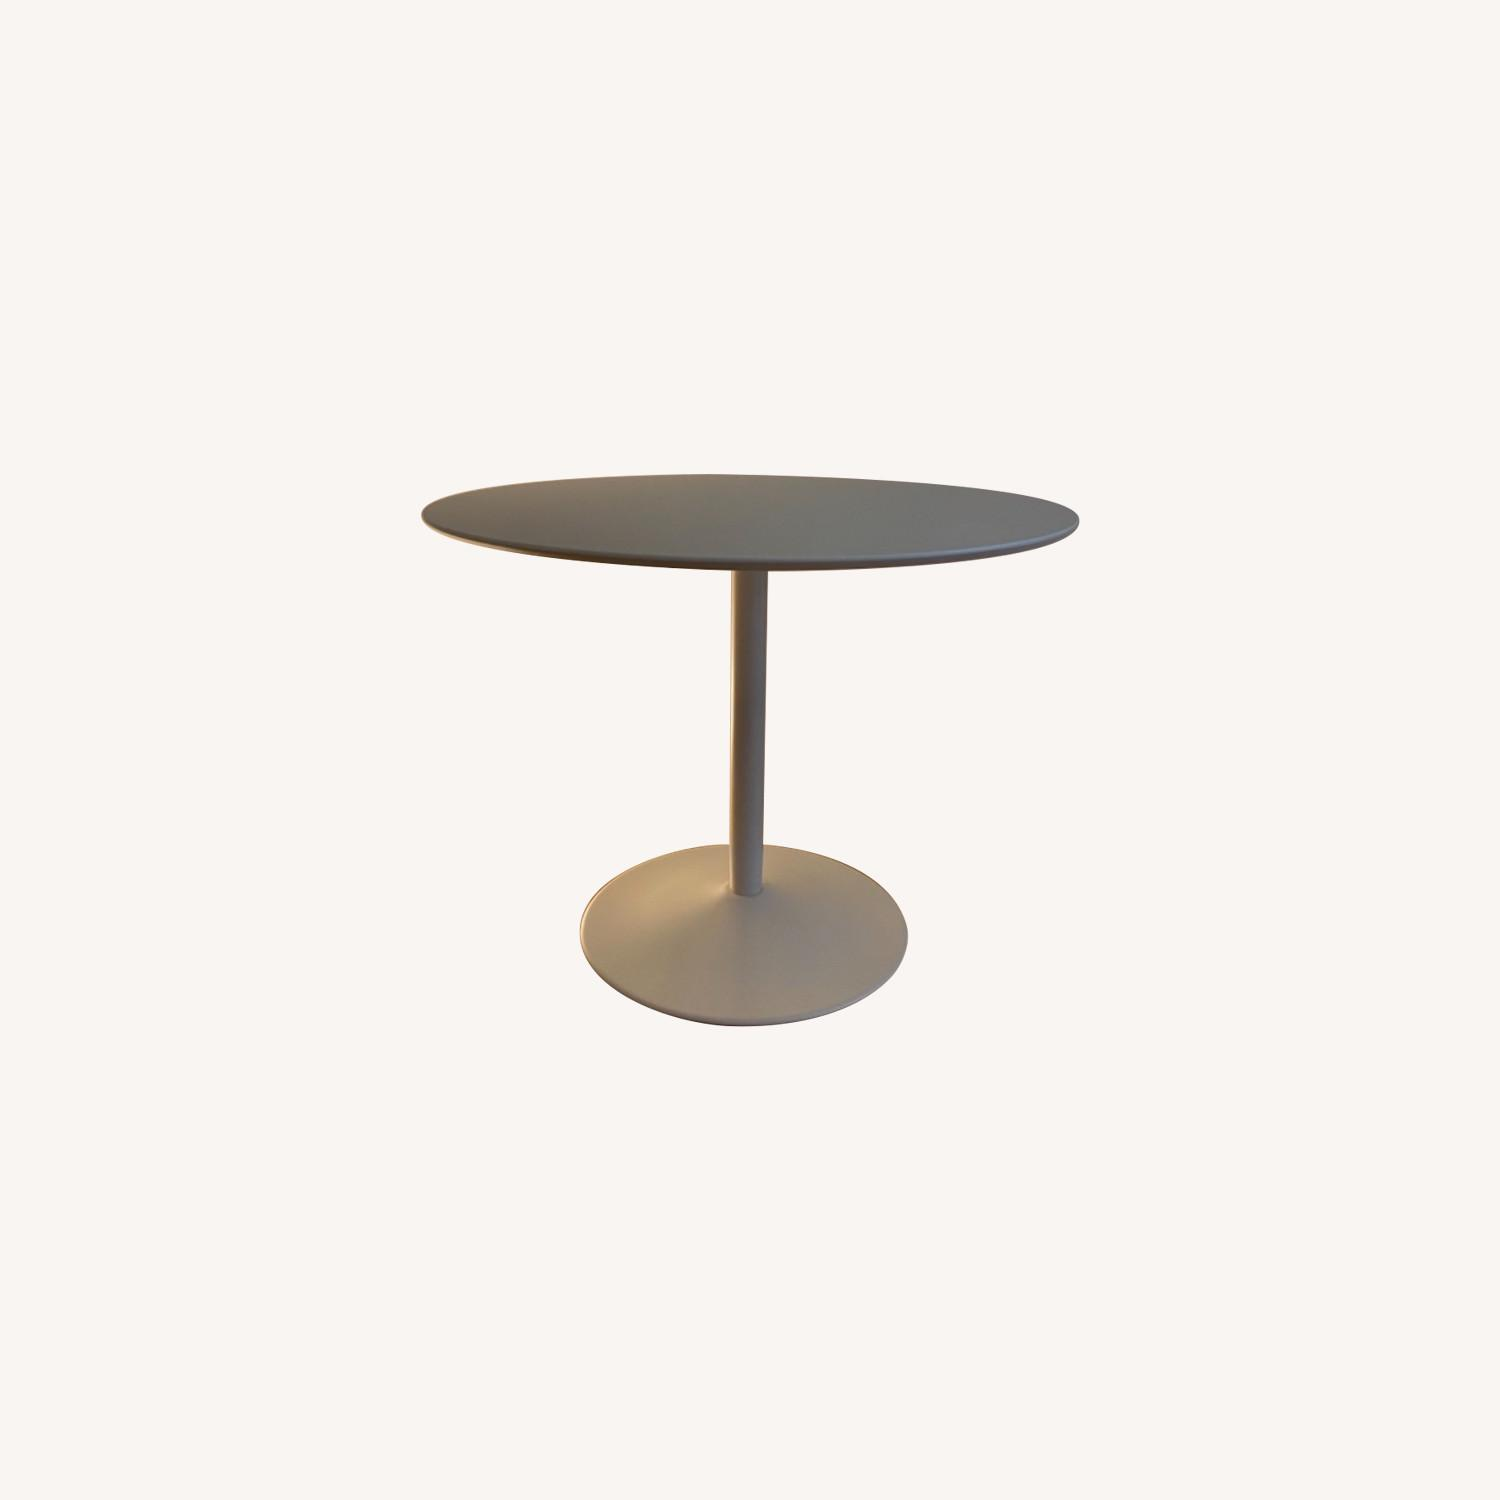 CB2 Odyssey Round Dining Table - image-0